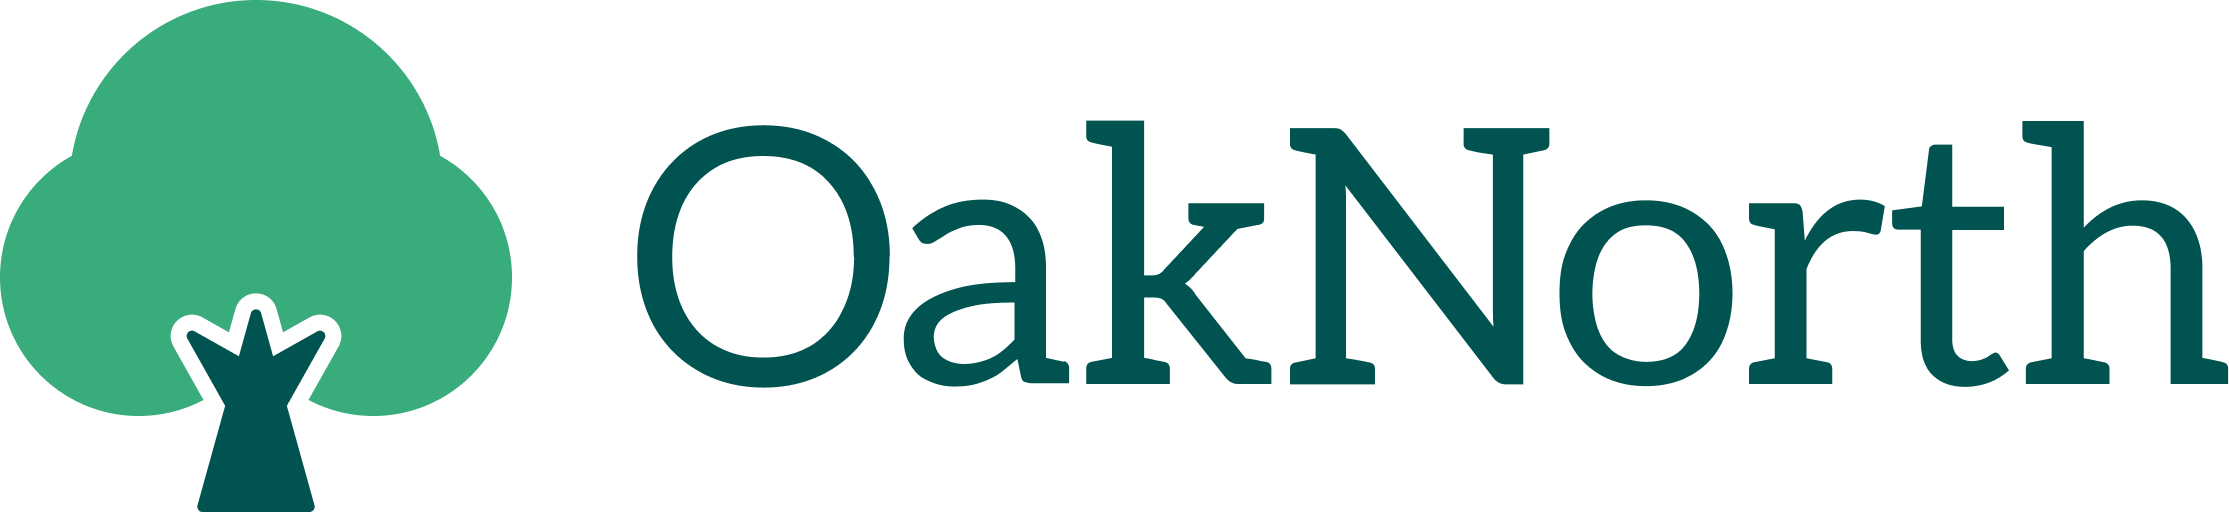 OakNorth Bank, MoneyLIVE Banking Conference